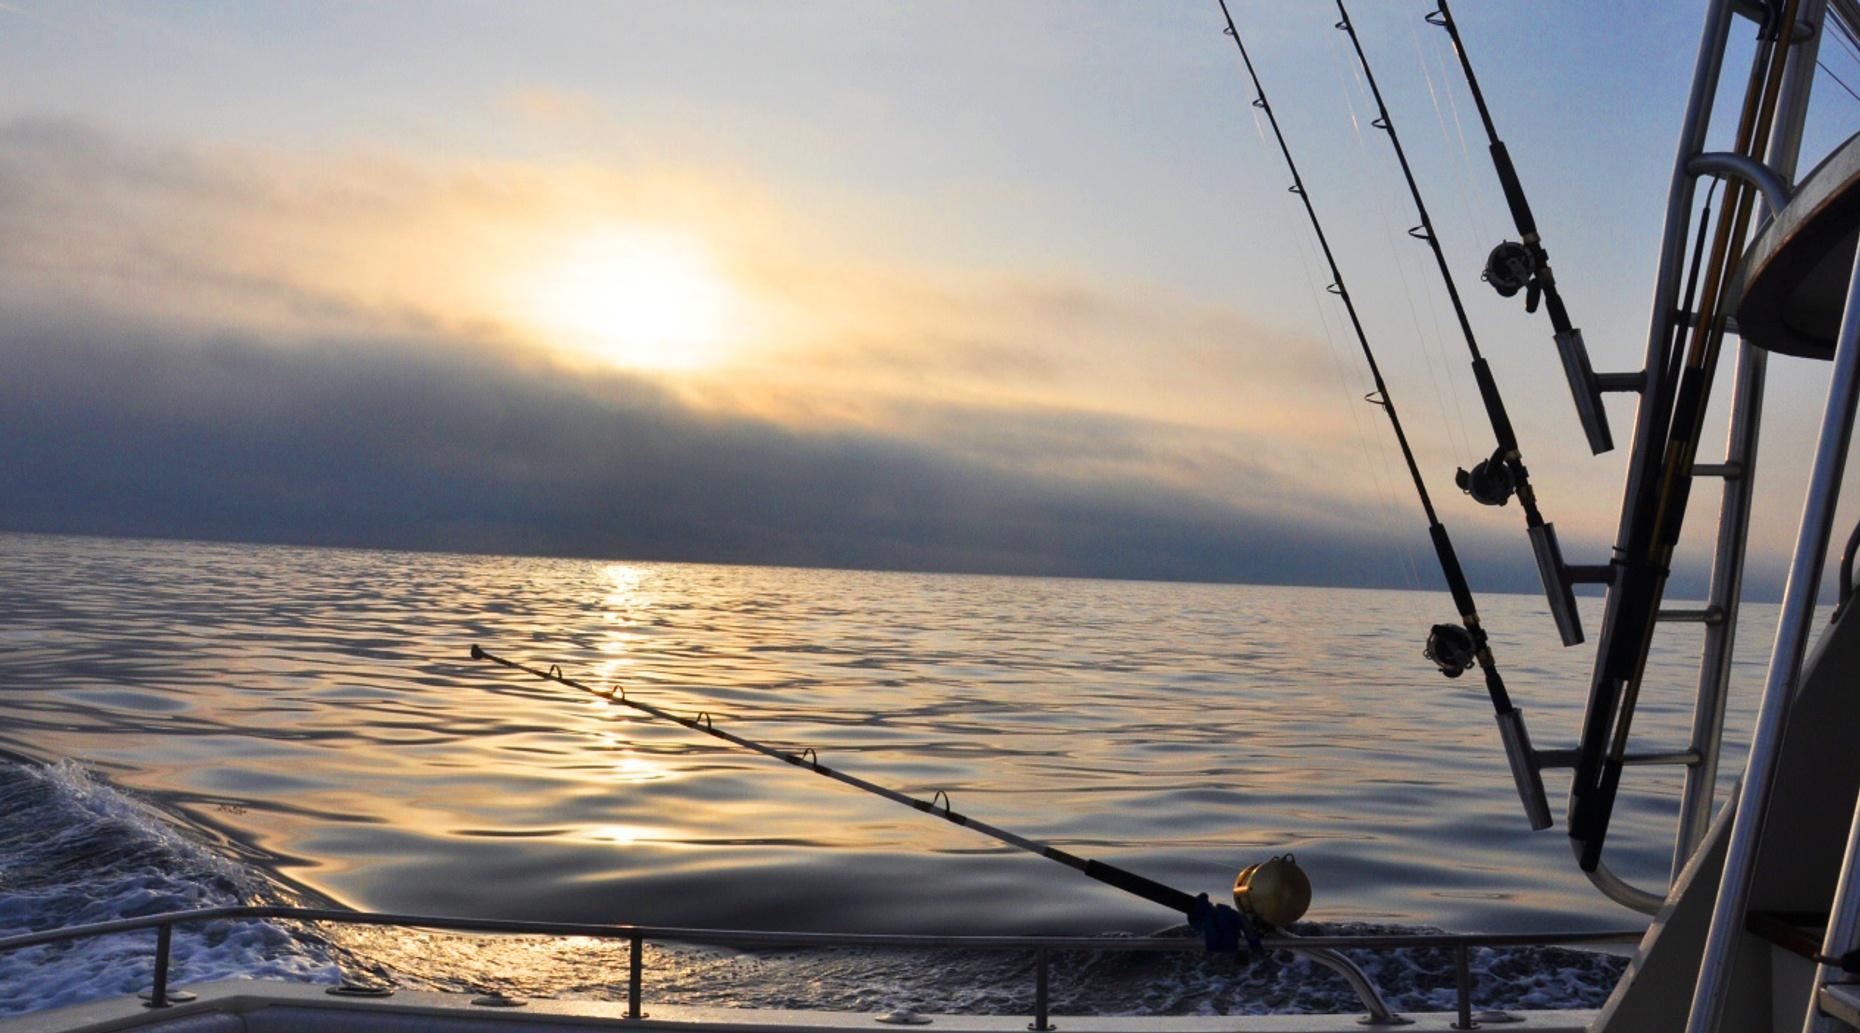 Private Nighttime Swordfishing Trip in Hollywood